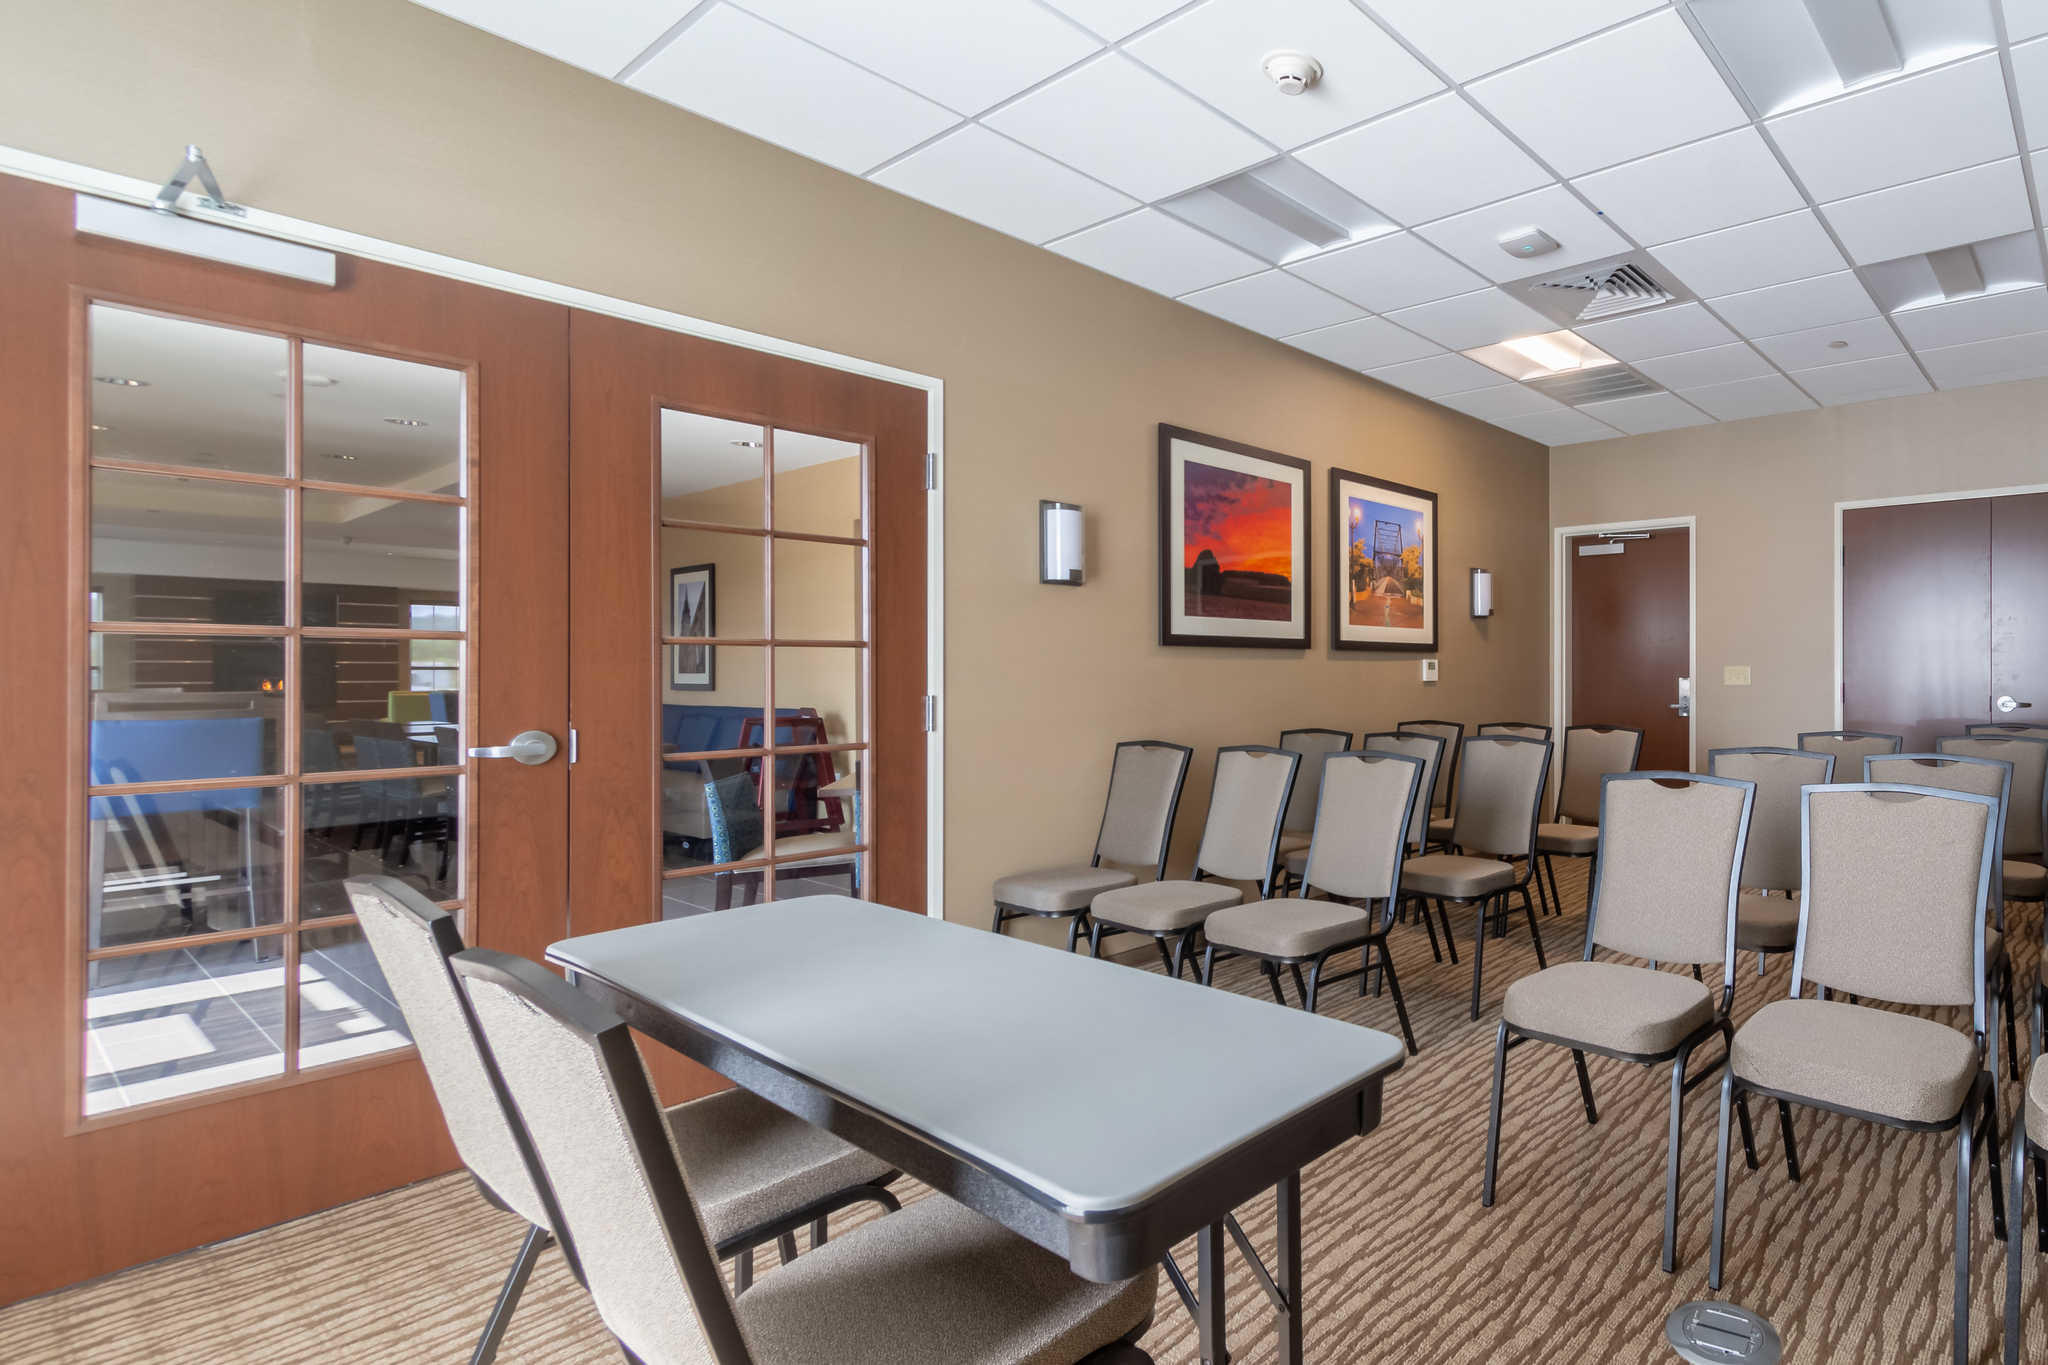 Comfort Inn & Suites - Harrisburg Airport - Hershey South image 33